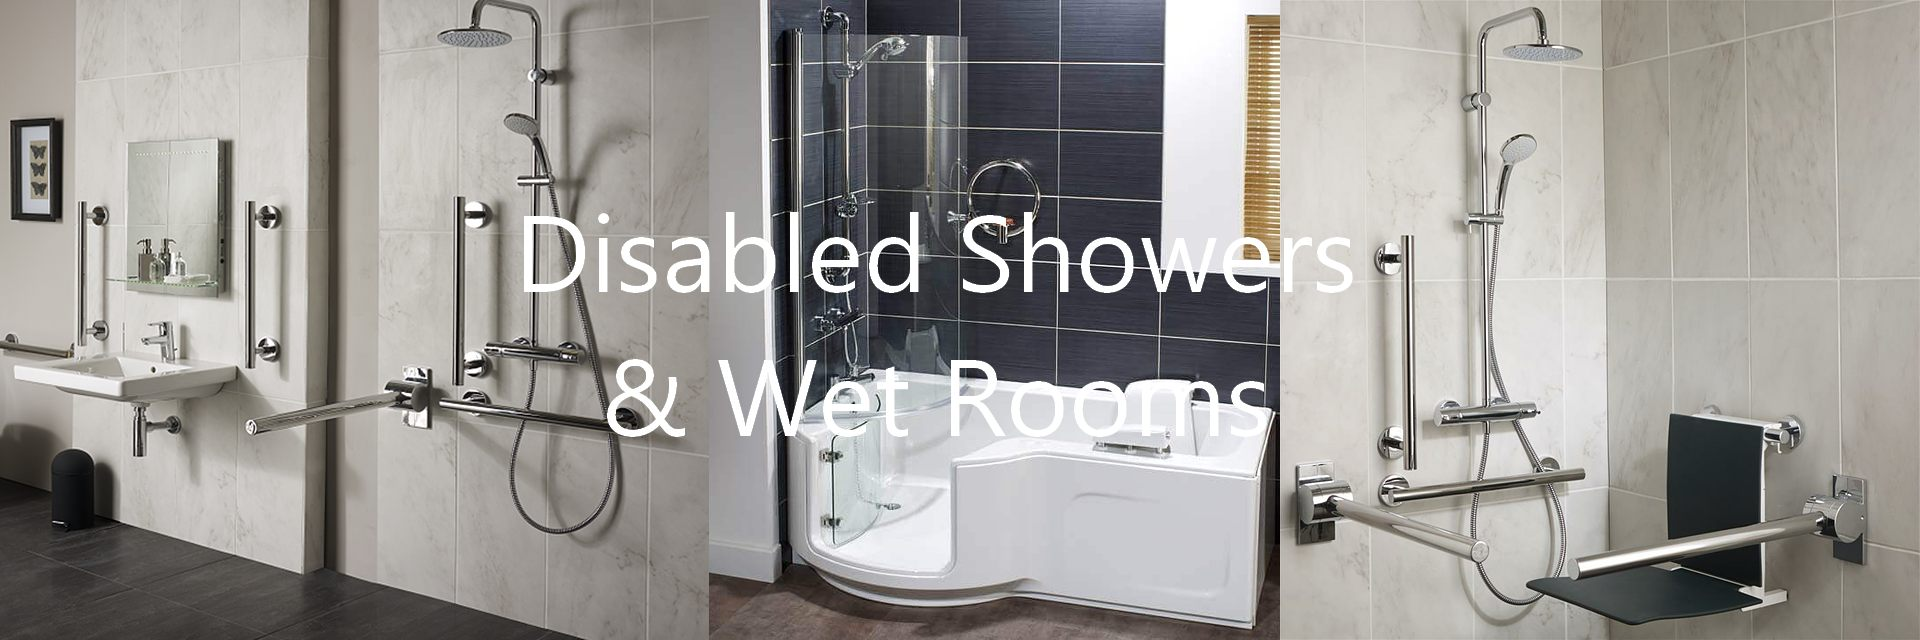 KBB Designs   Disabled Showers U0026 Wet Rooms   Design And Desire In Perfect  Harmony